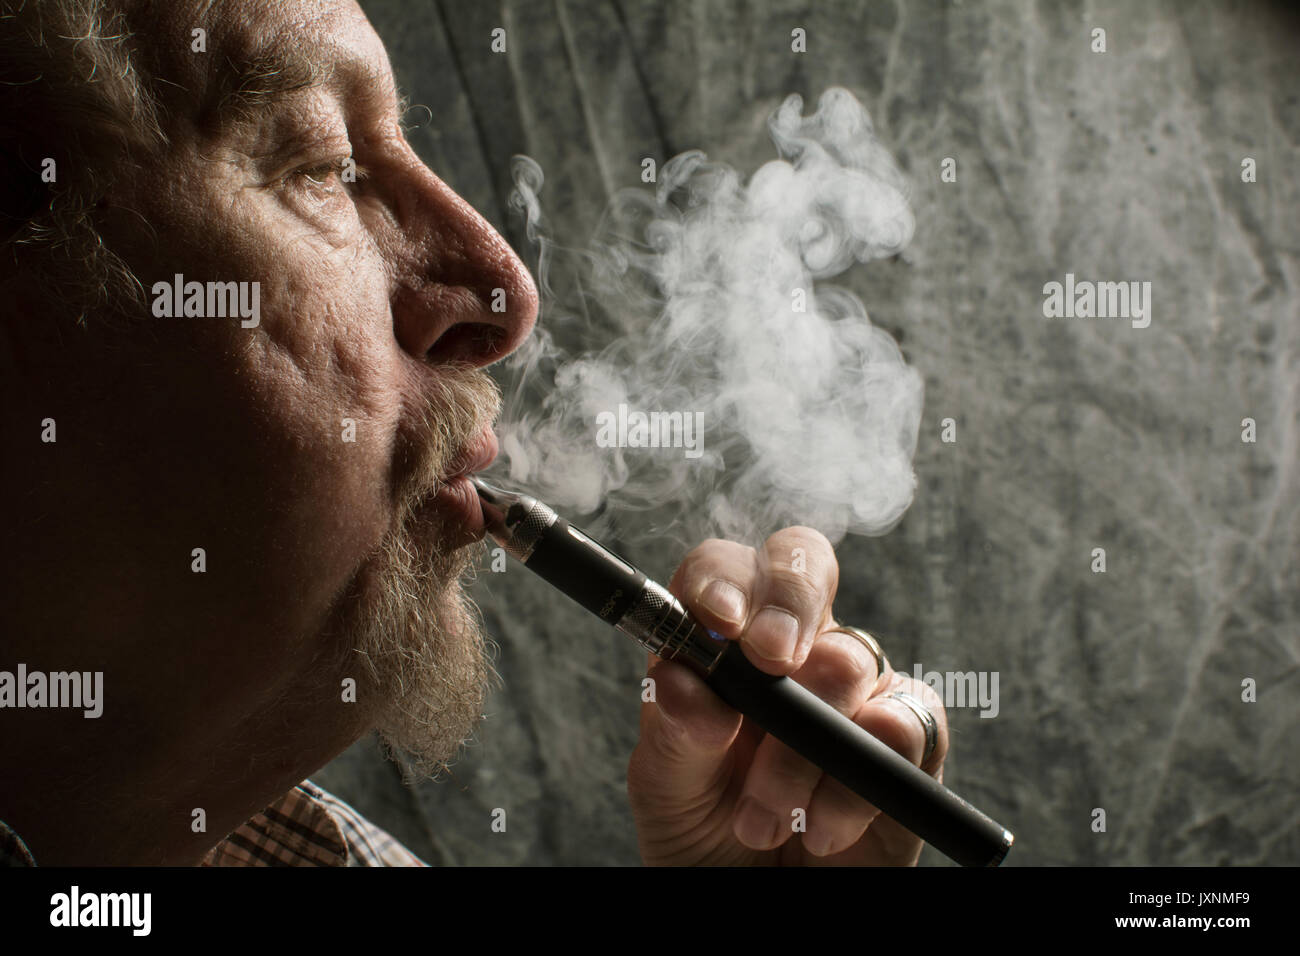 An older man with a beard smoking an electronic cigarette ( vaping an E-cigarette), a healthier option than tobacco - Stock Image